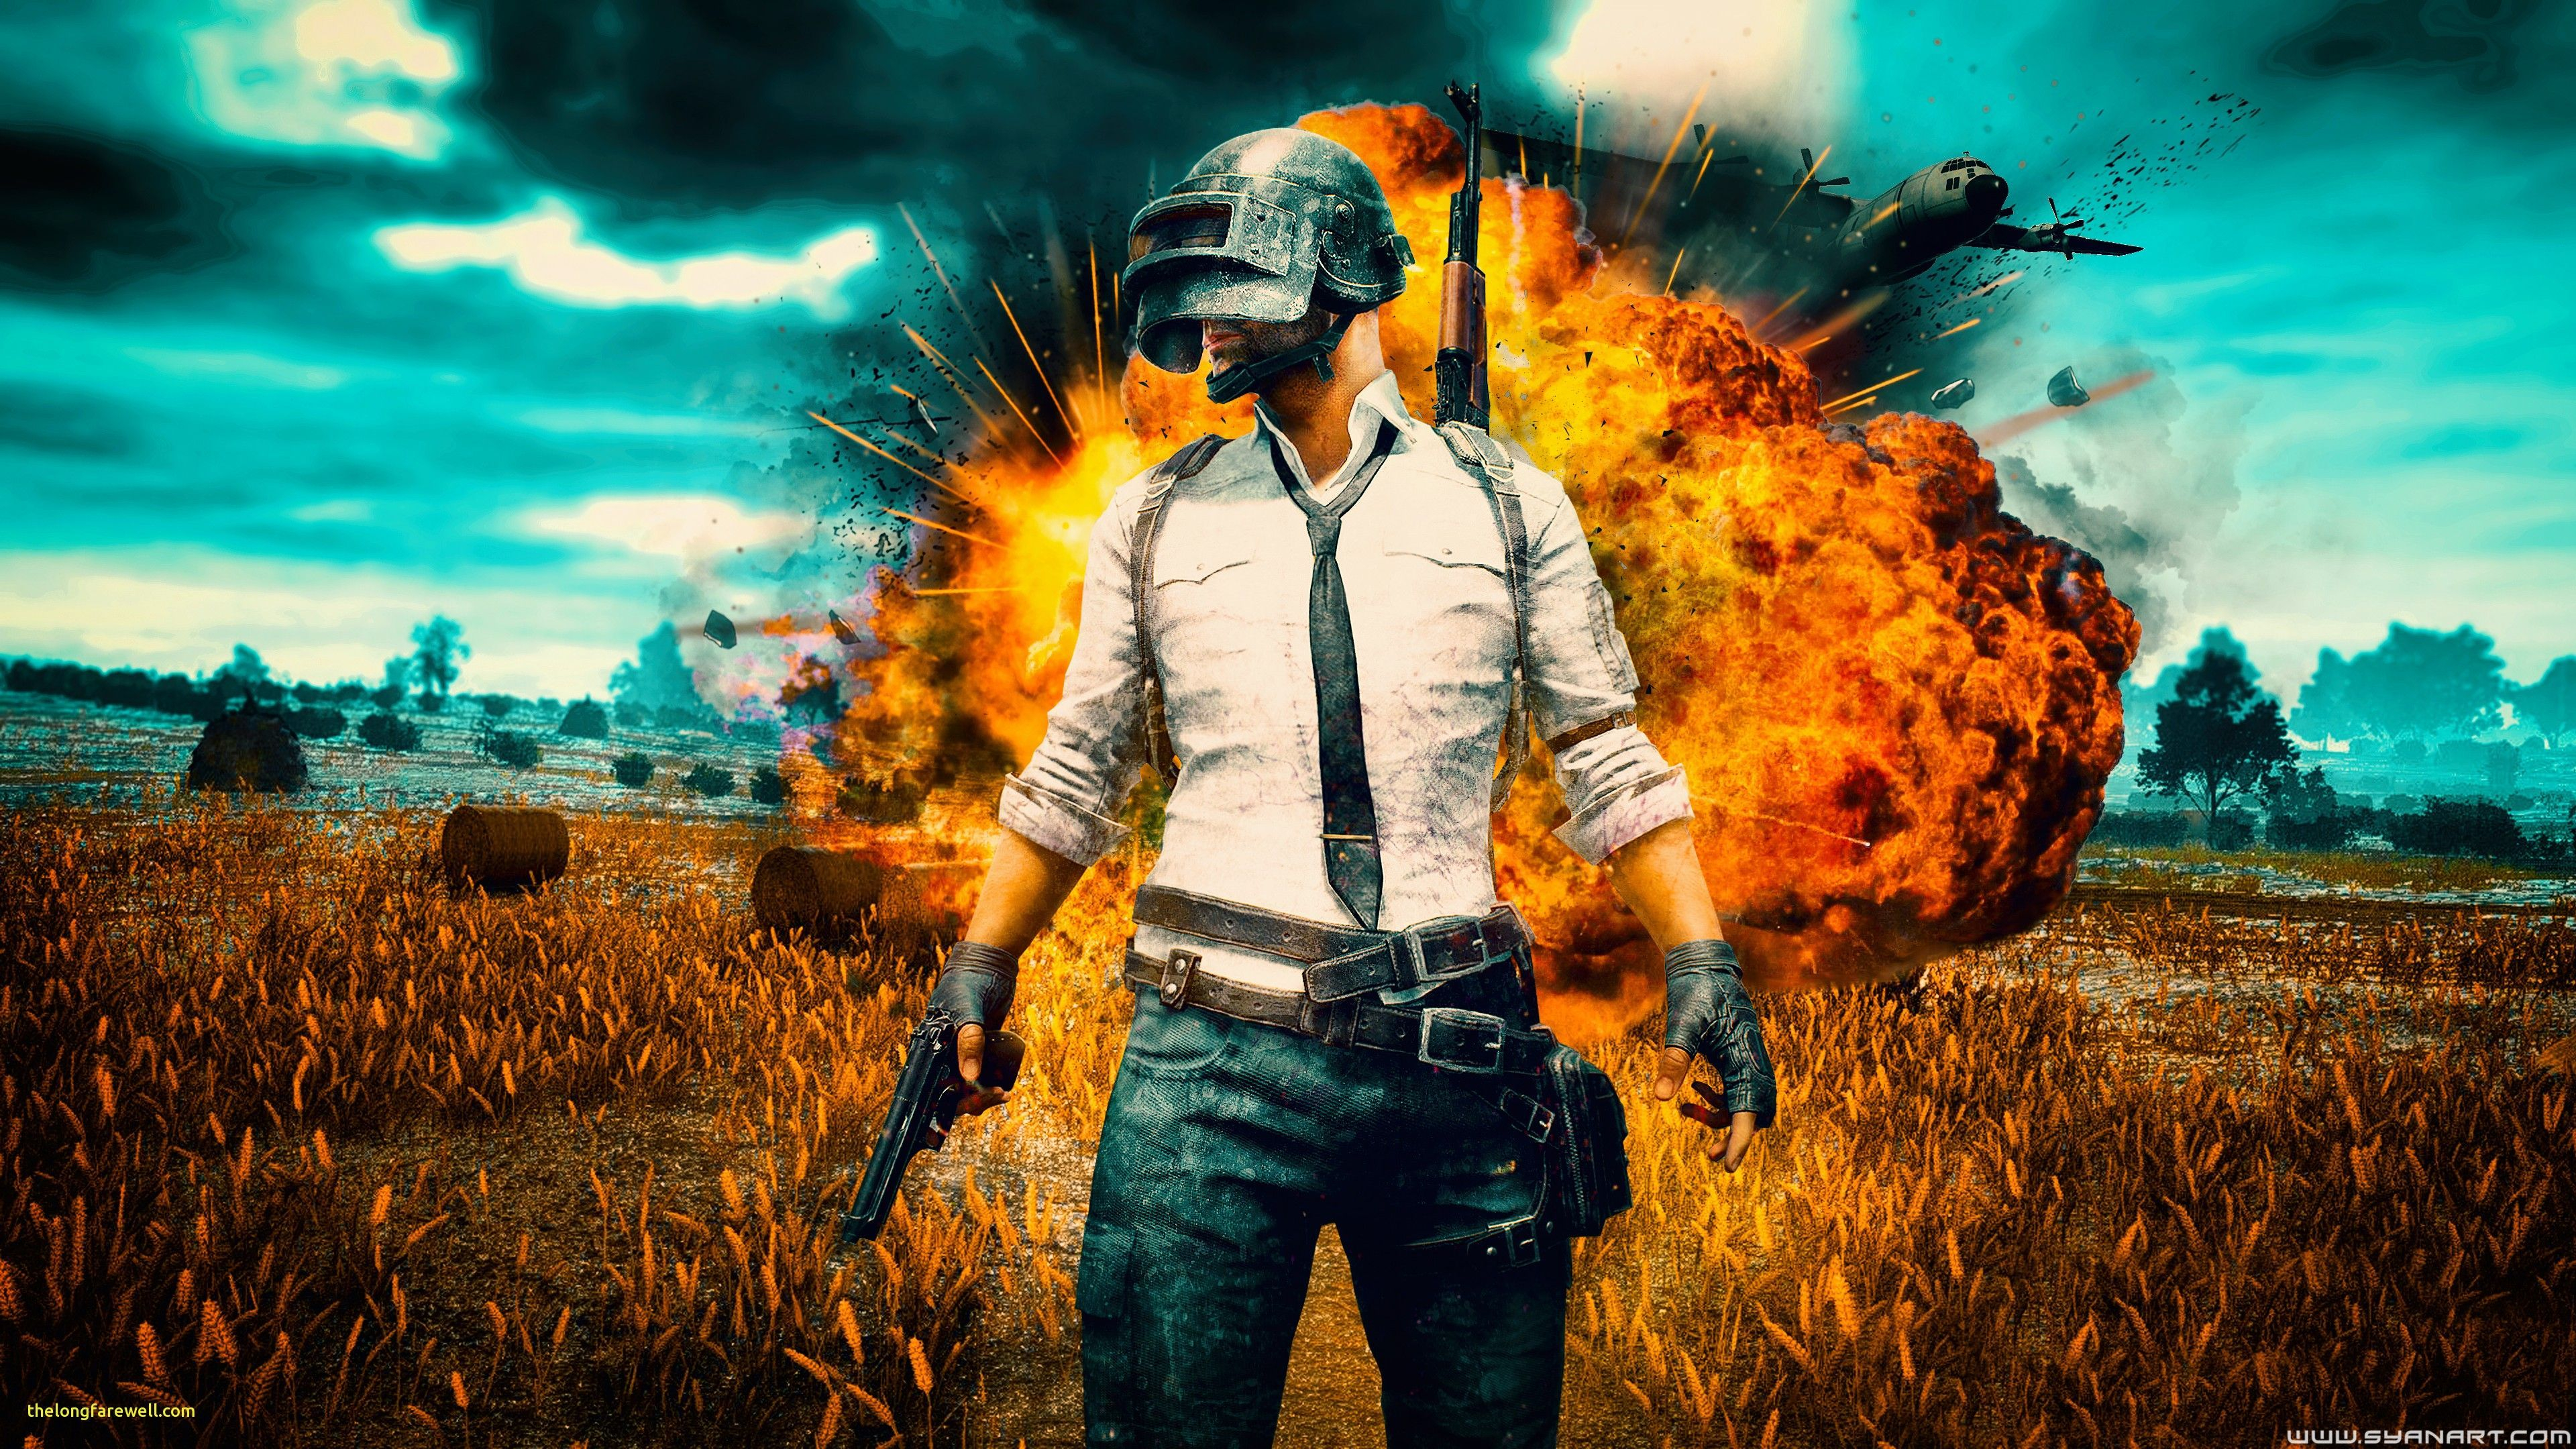 Pubg Ultra Hd Coming Soon: Player Unknown's Battlegrounds (PUBG) 4K Pubg Wallpaper